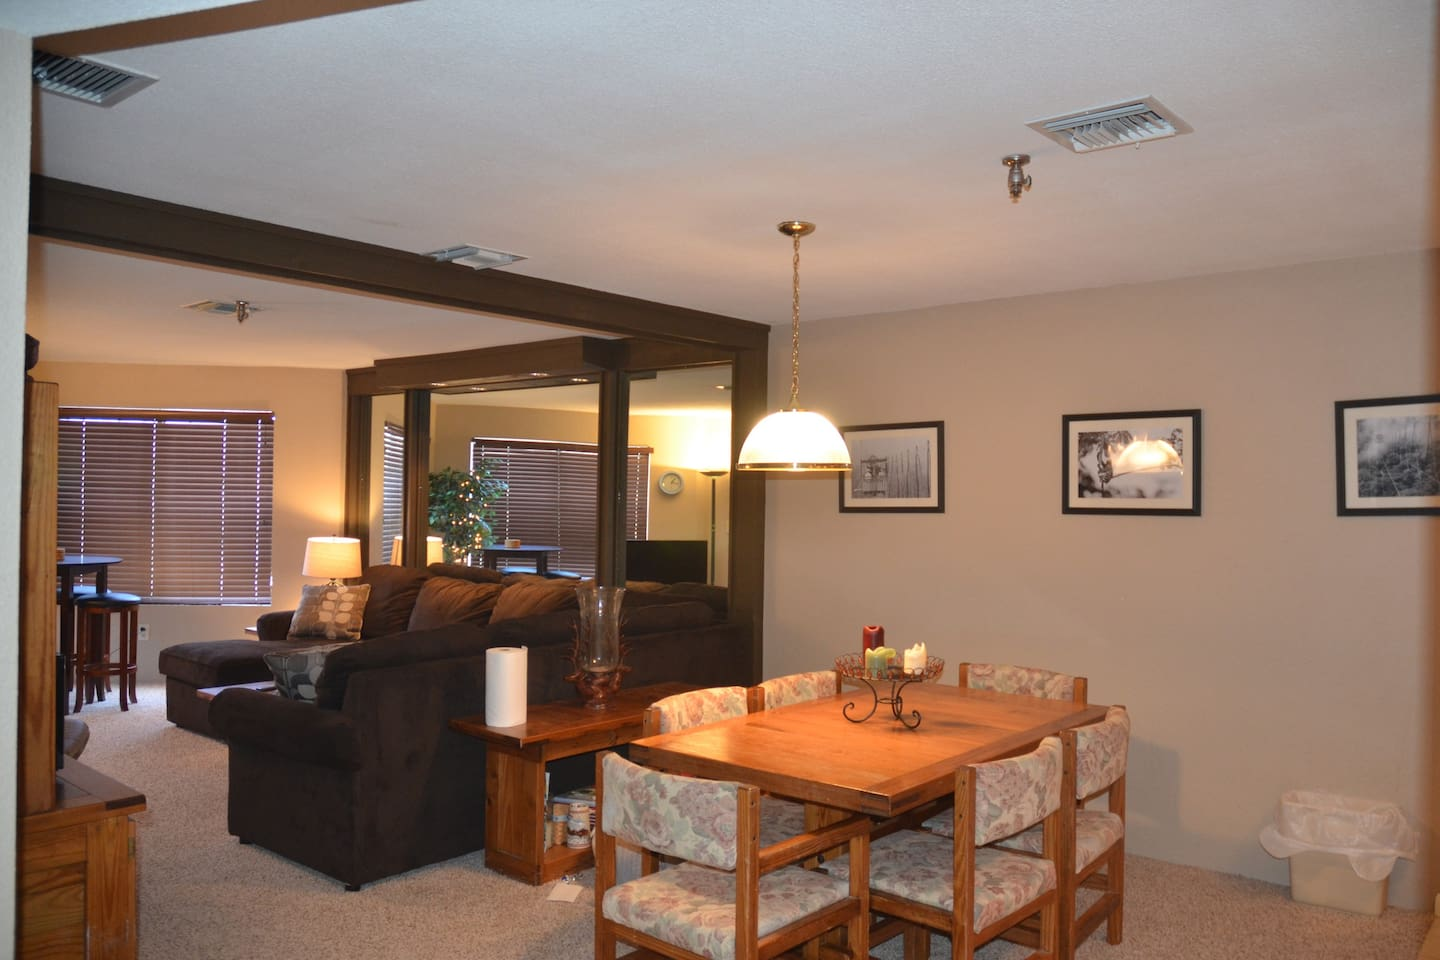 Living Room and Dining Area.  The window overlooks Goosebumps slope and Avalanche trail.